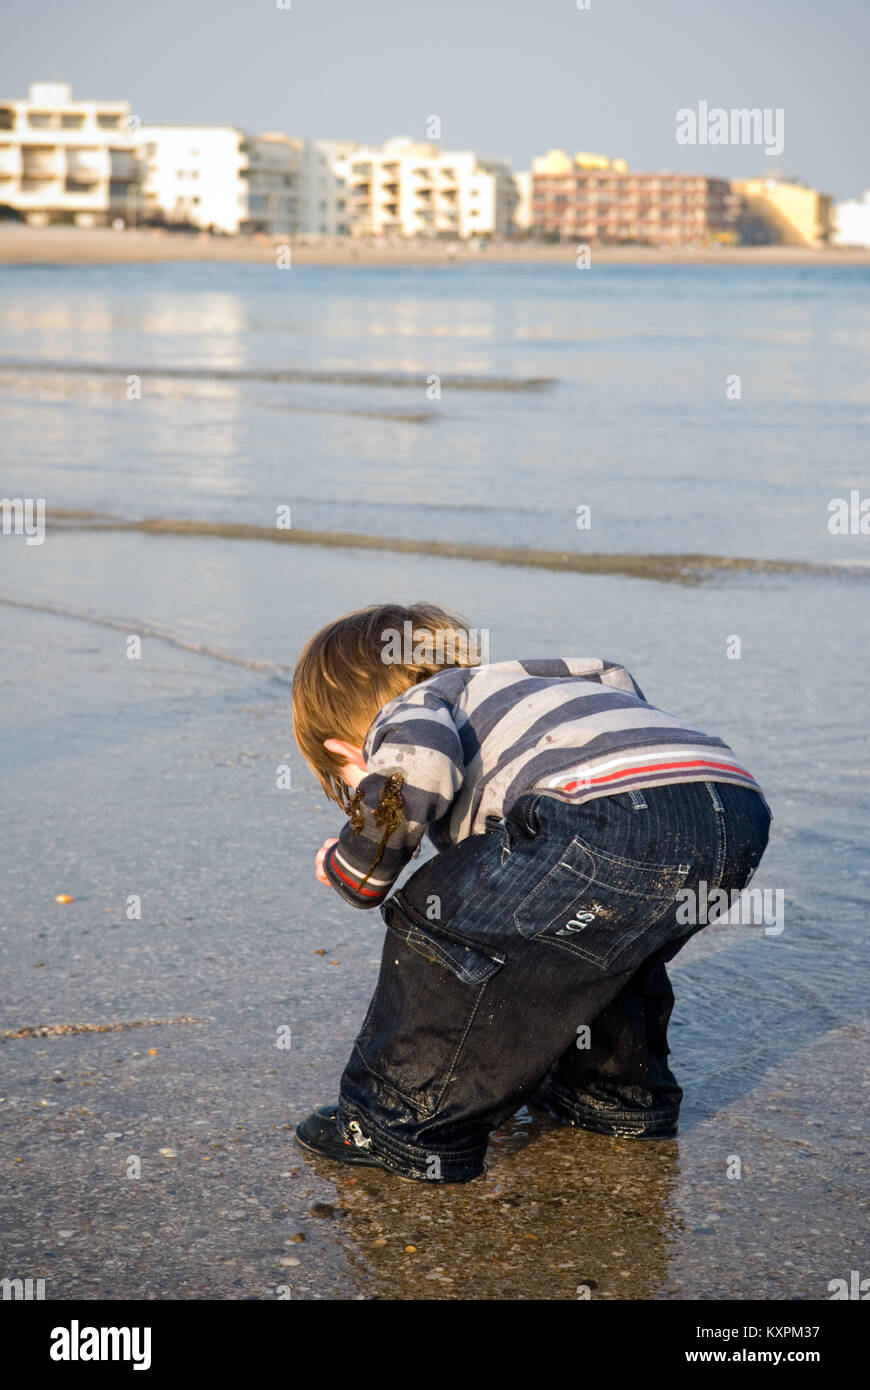 a four year old boy, fully clothed and soaked, bends over in the sea to retrieve a small crab - Stock Image